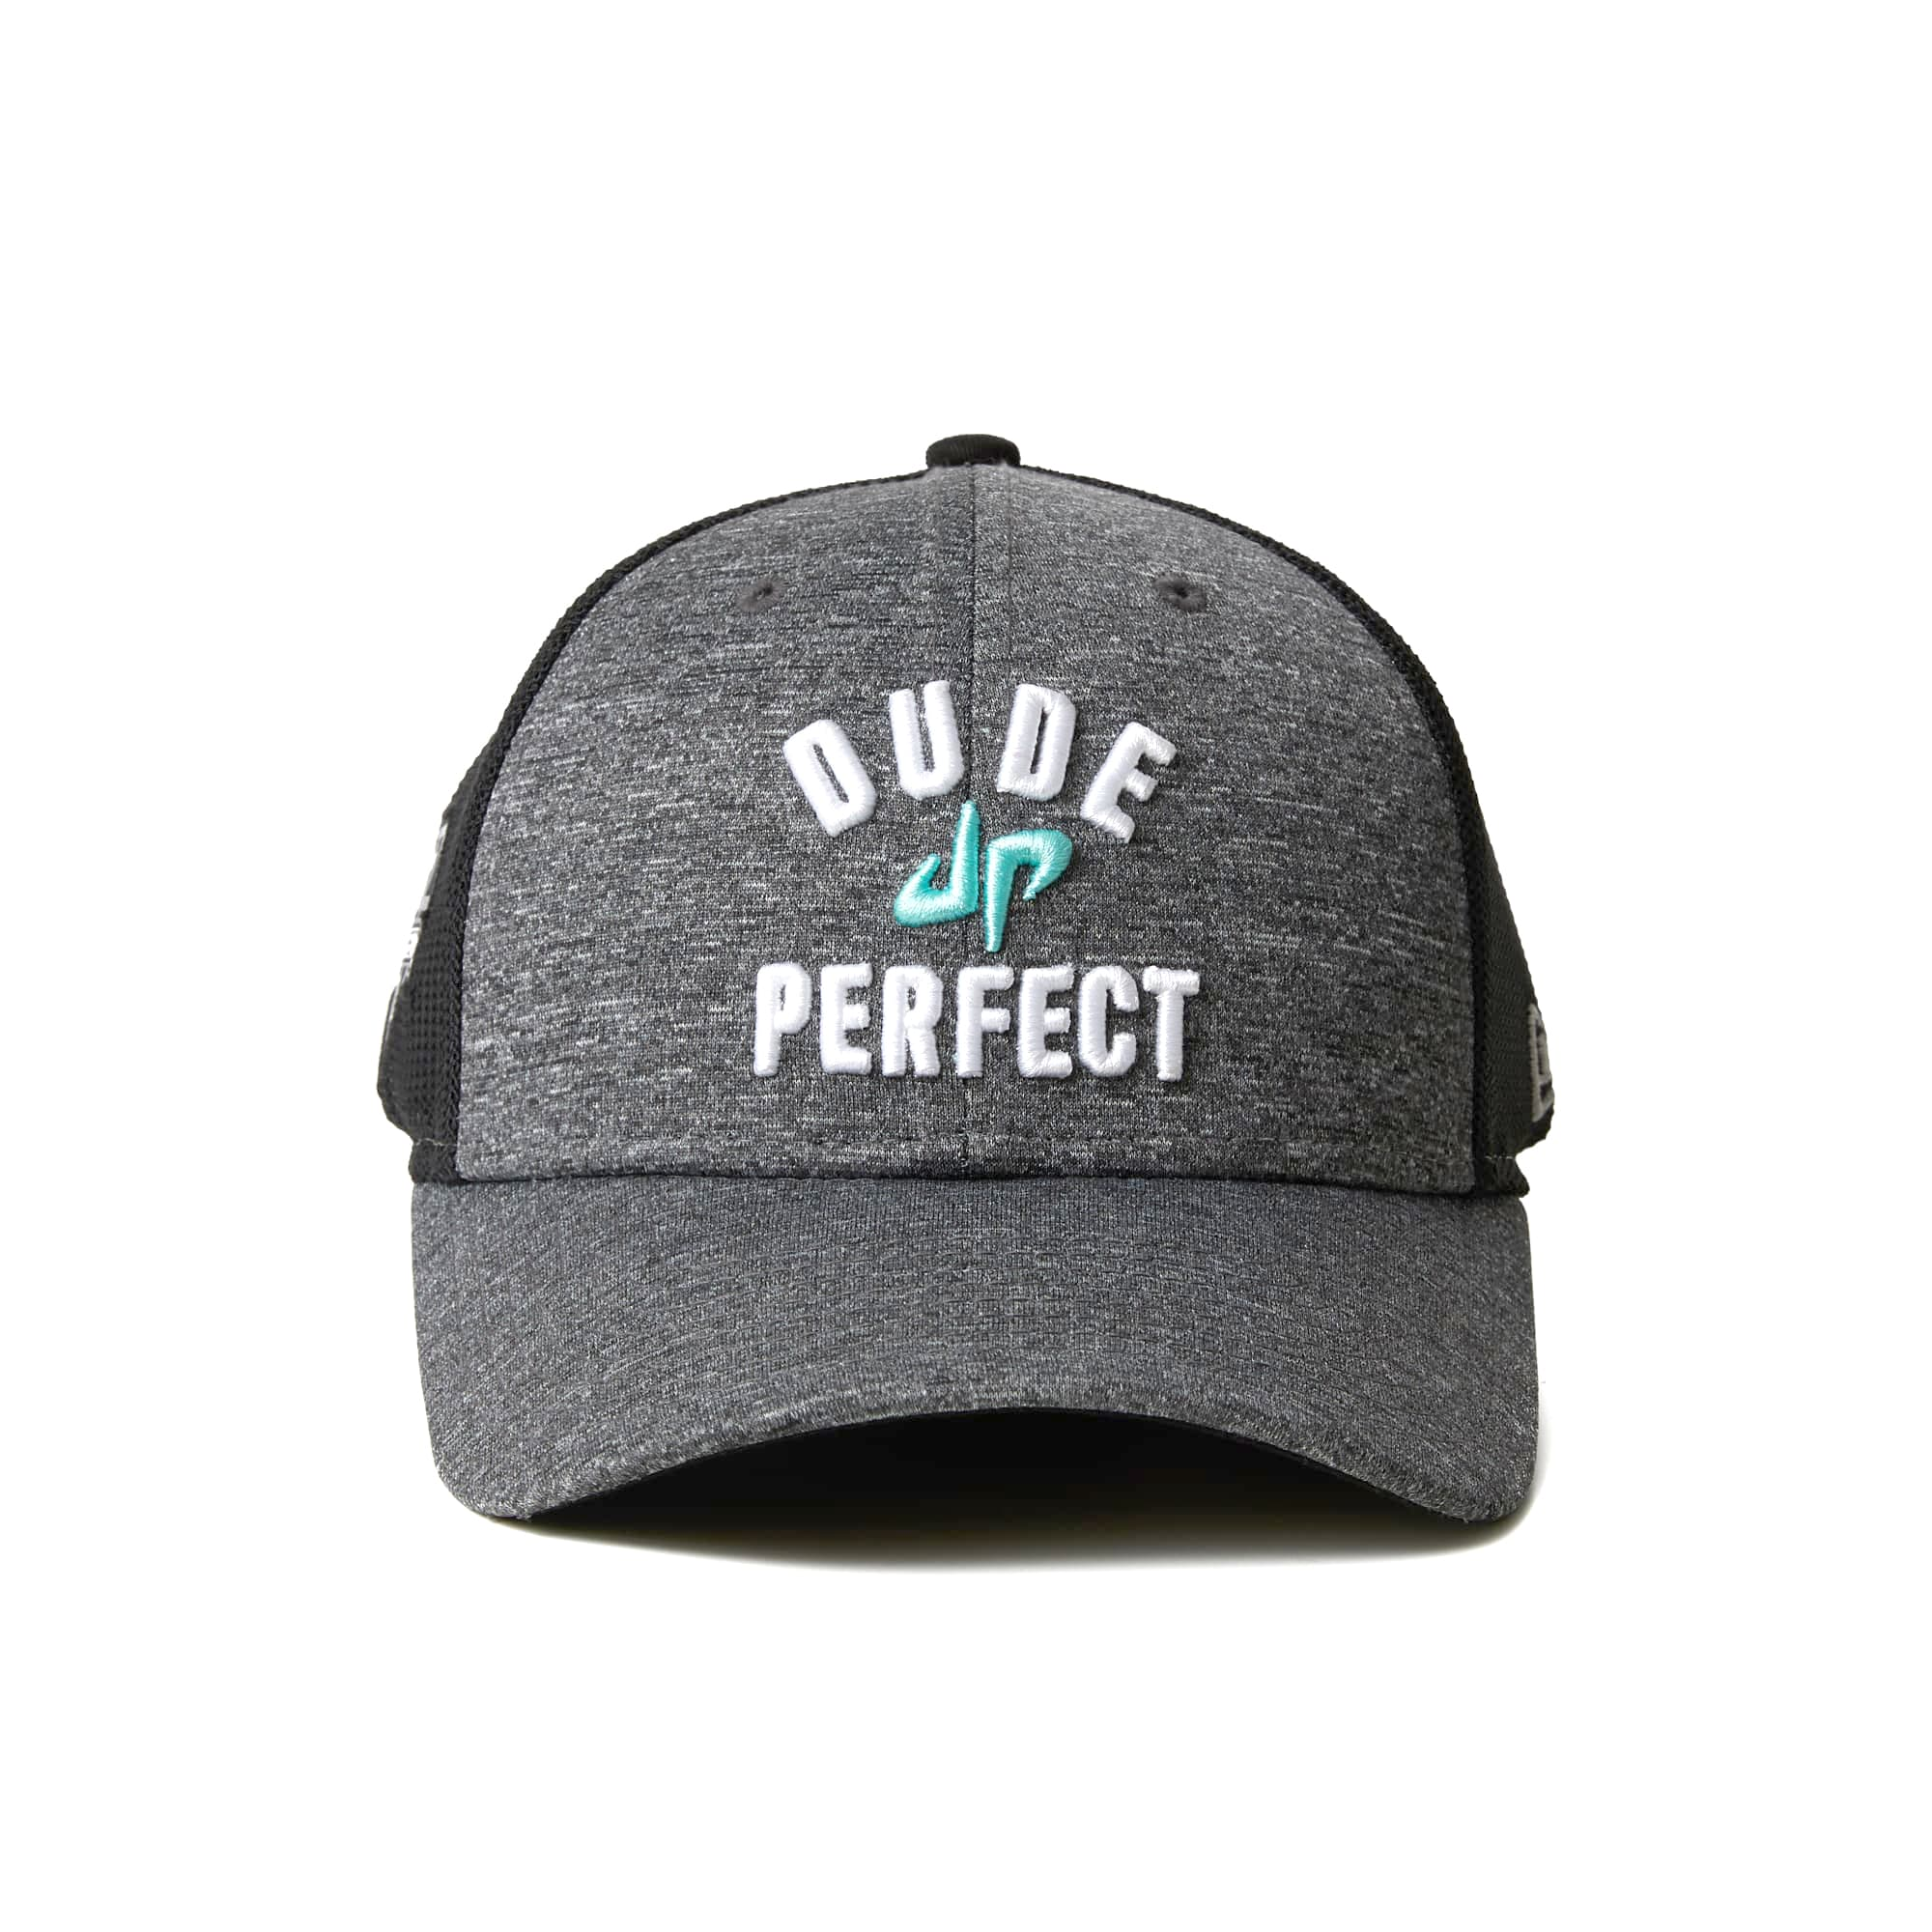 1dc7d12c9 Dude Perfect | Official Storefront | Dude Perfect Official